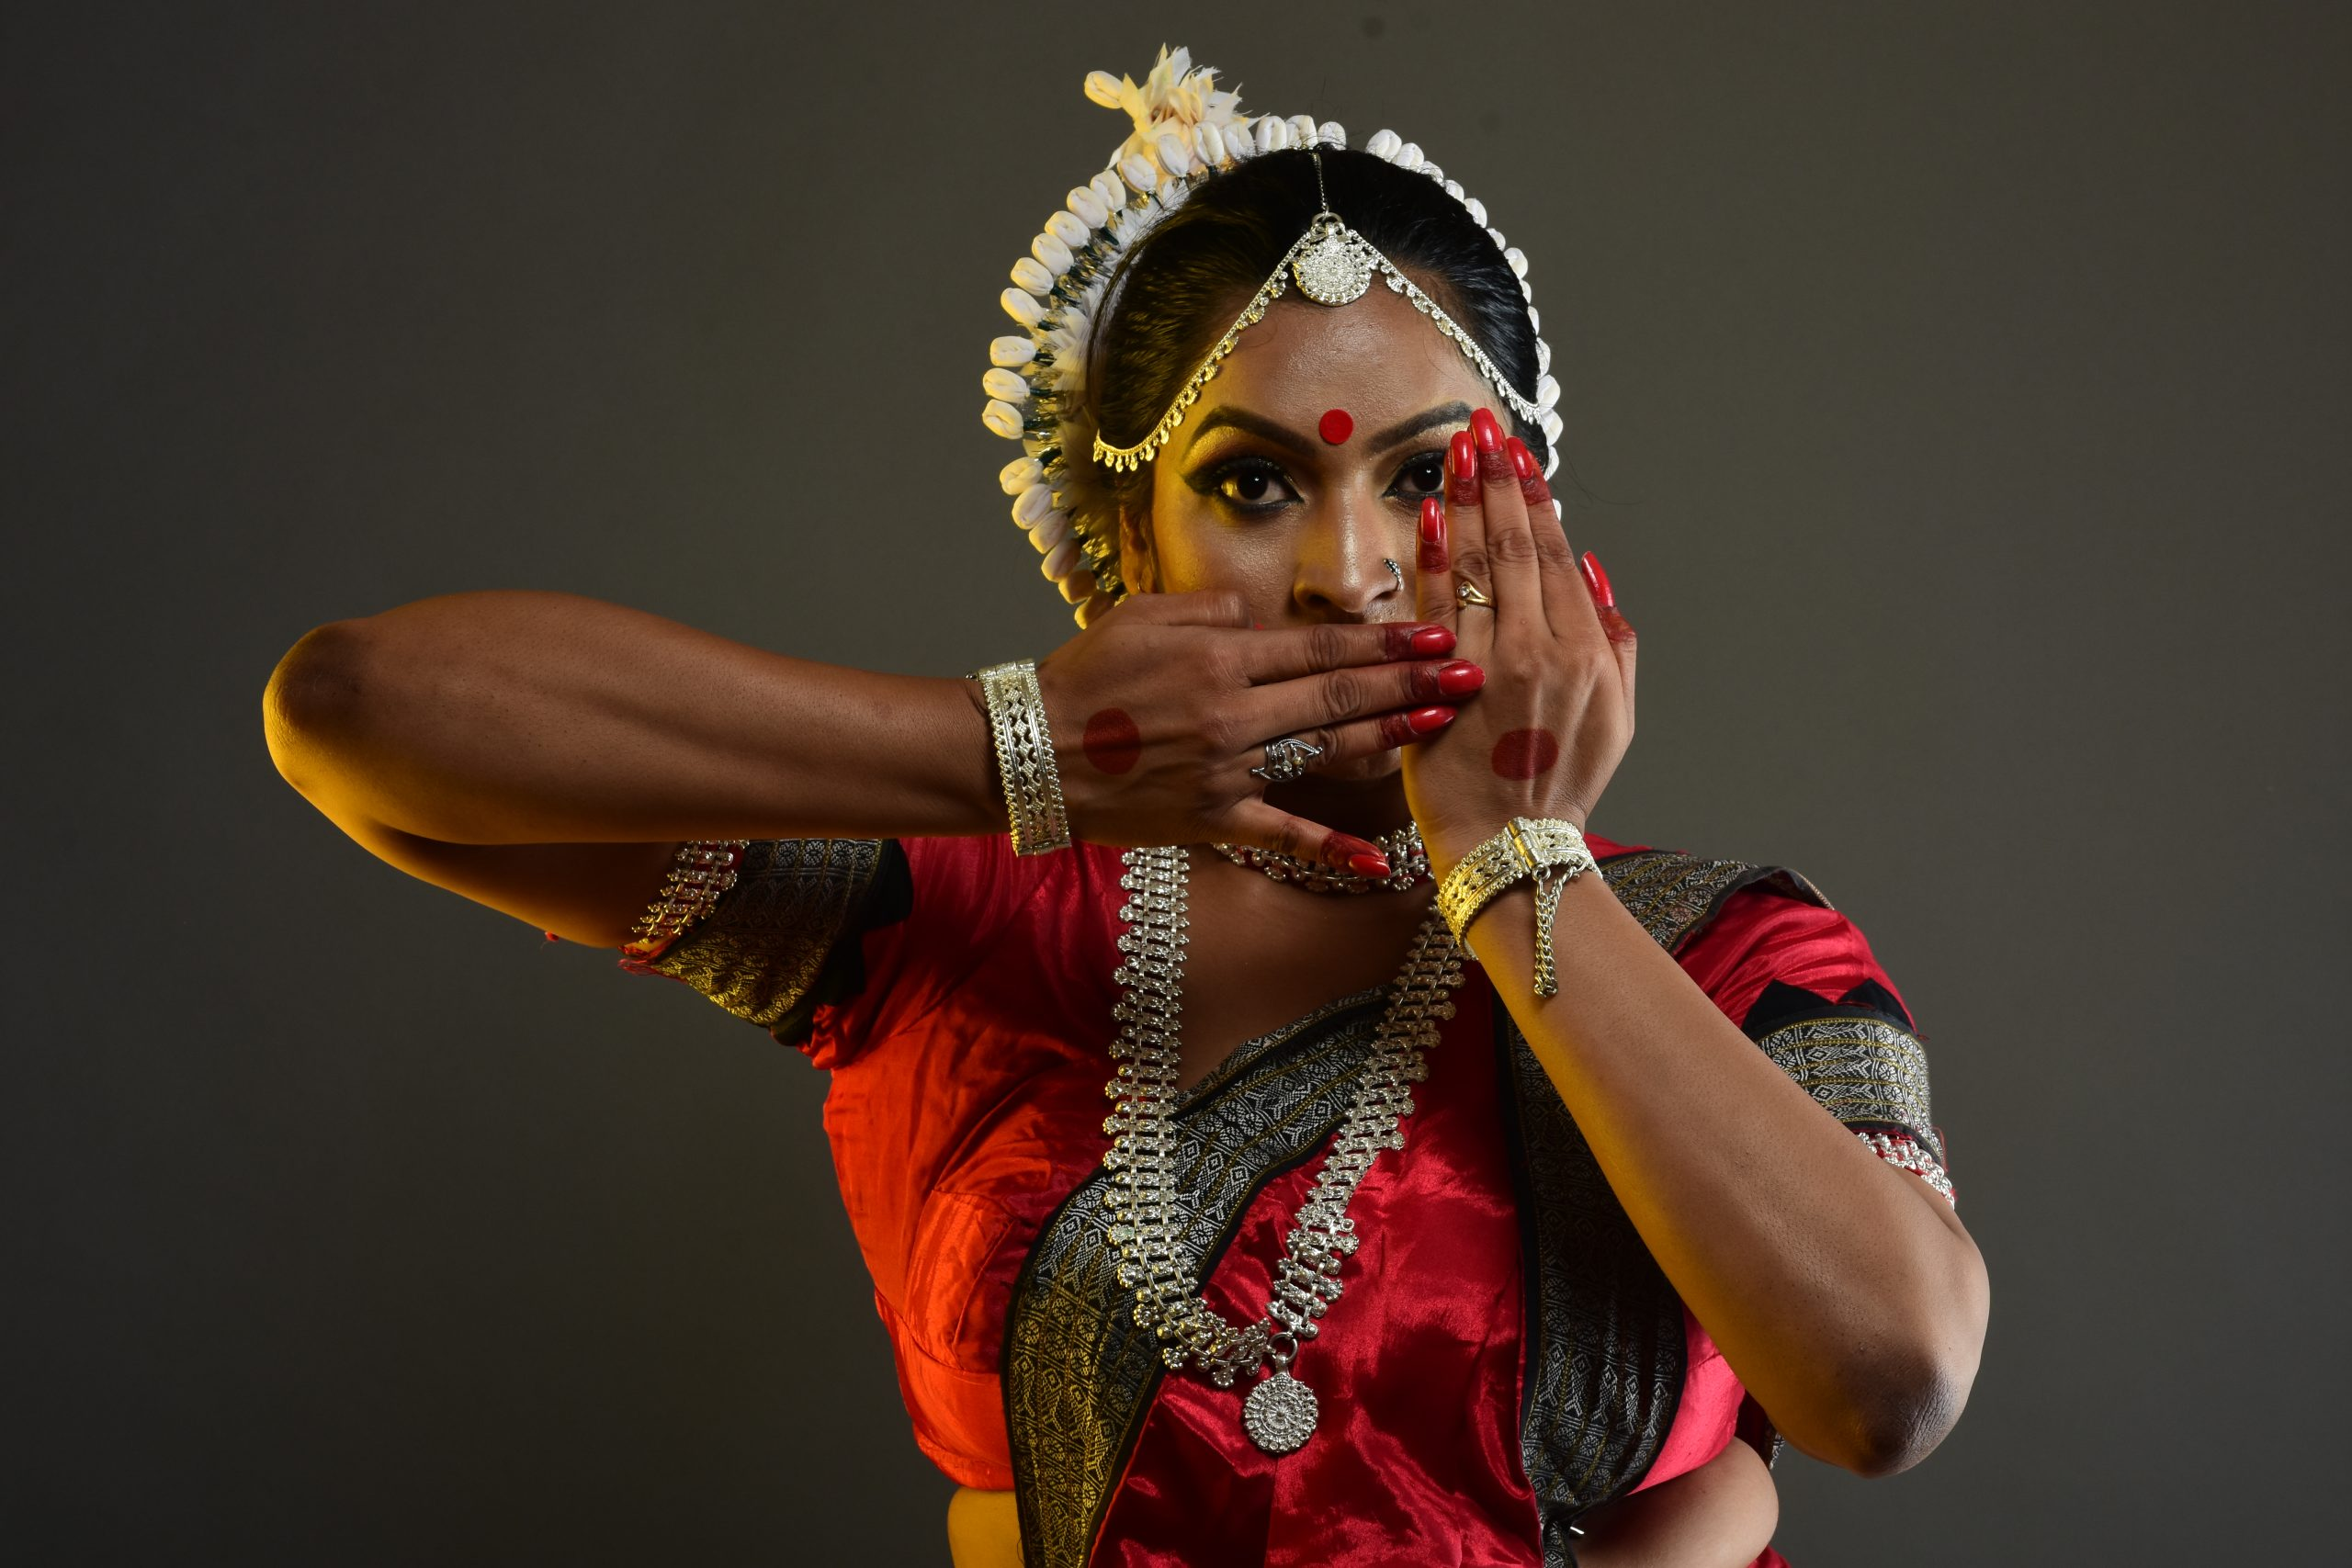 Dancer with expressions